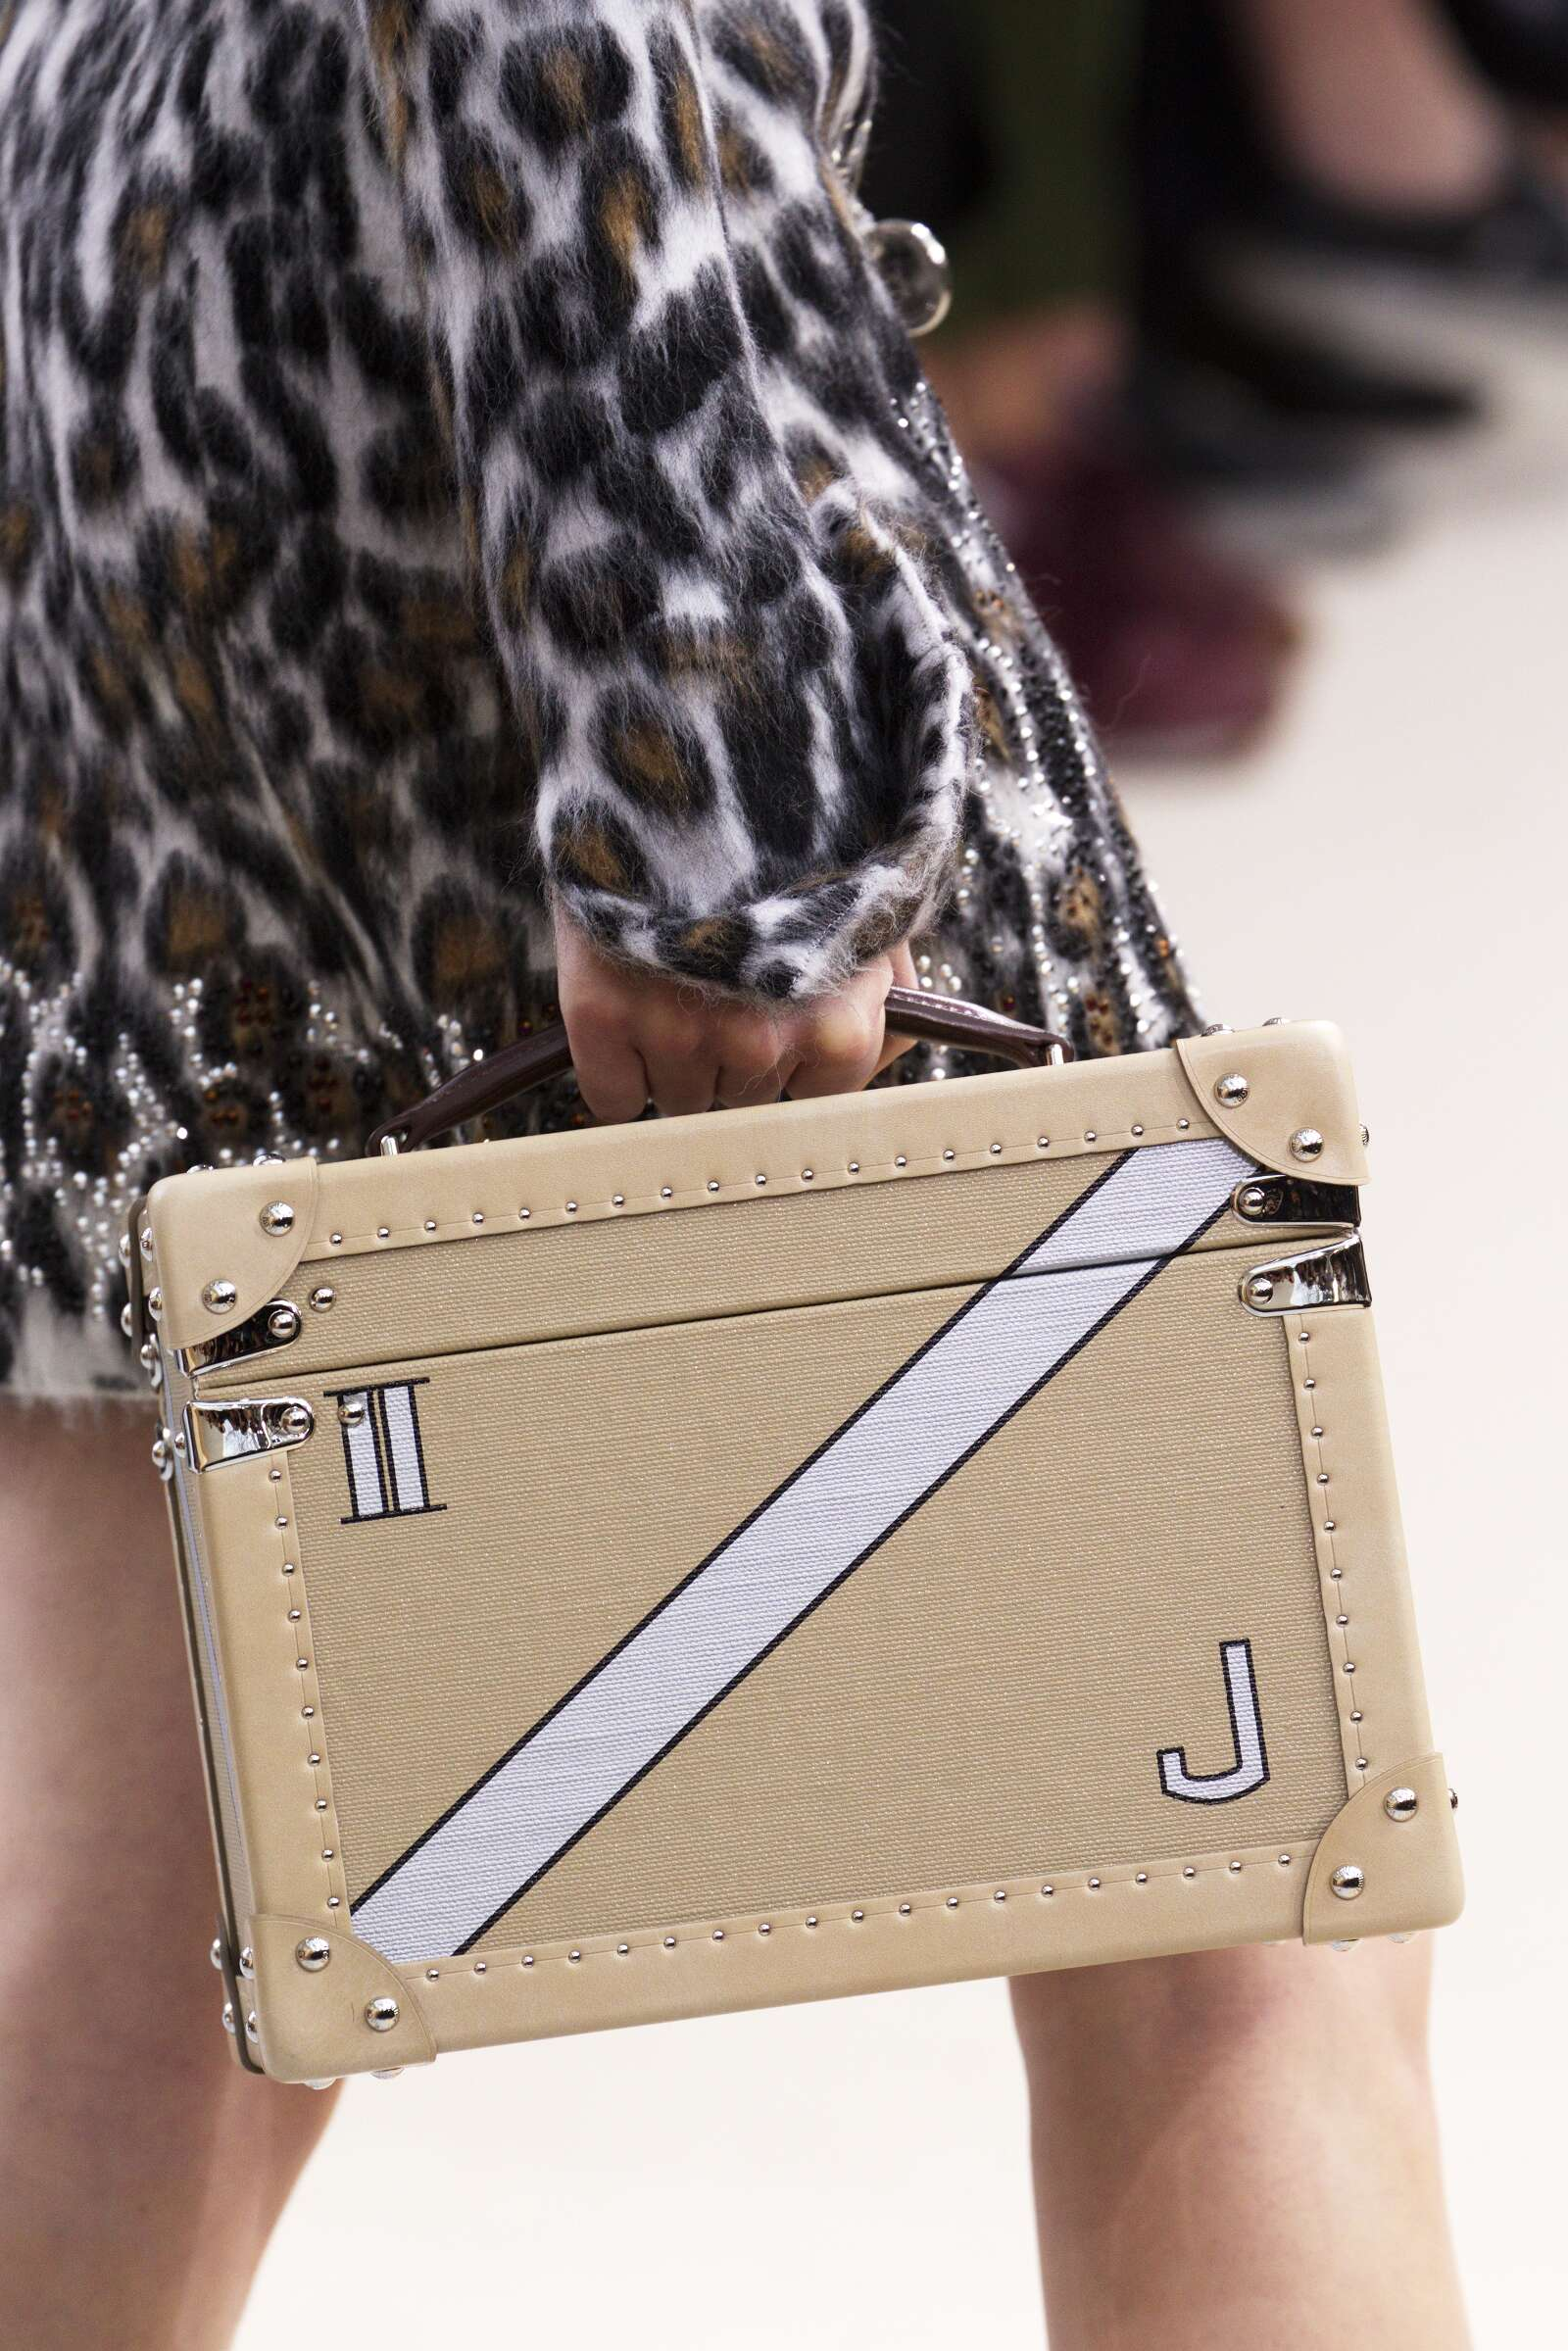 Louis Vuitton Bag Details Collection Winter 2015 Catwalk